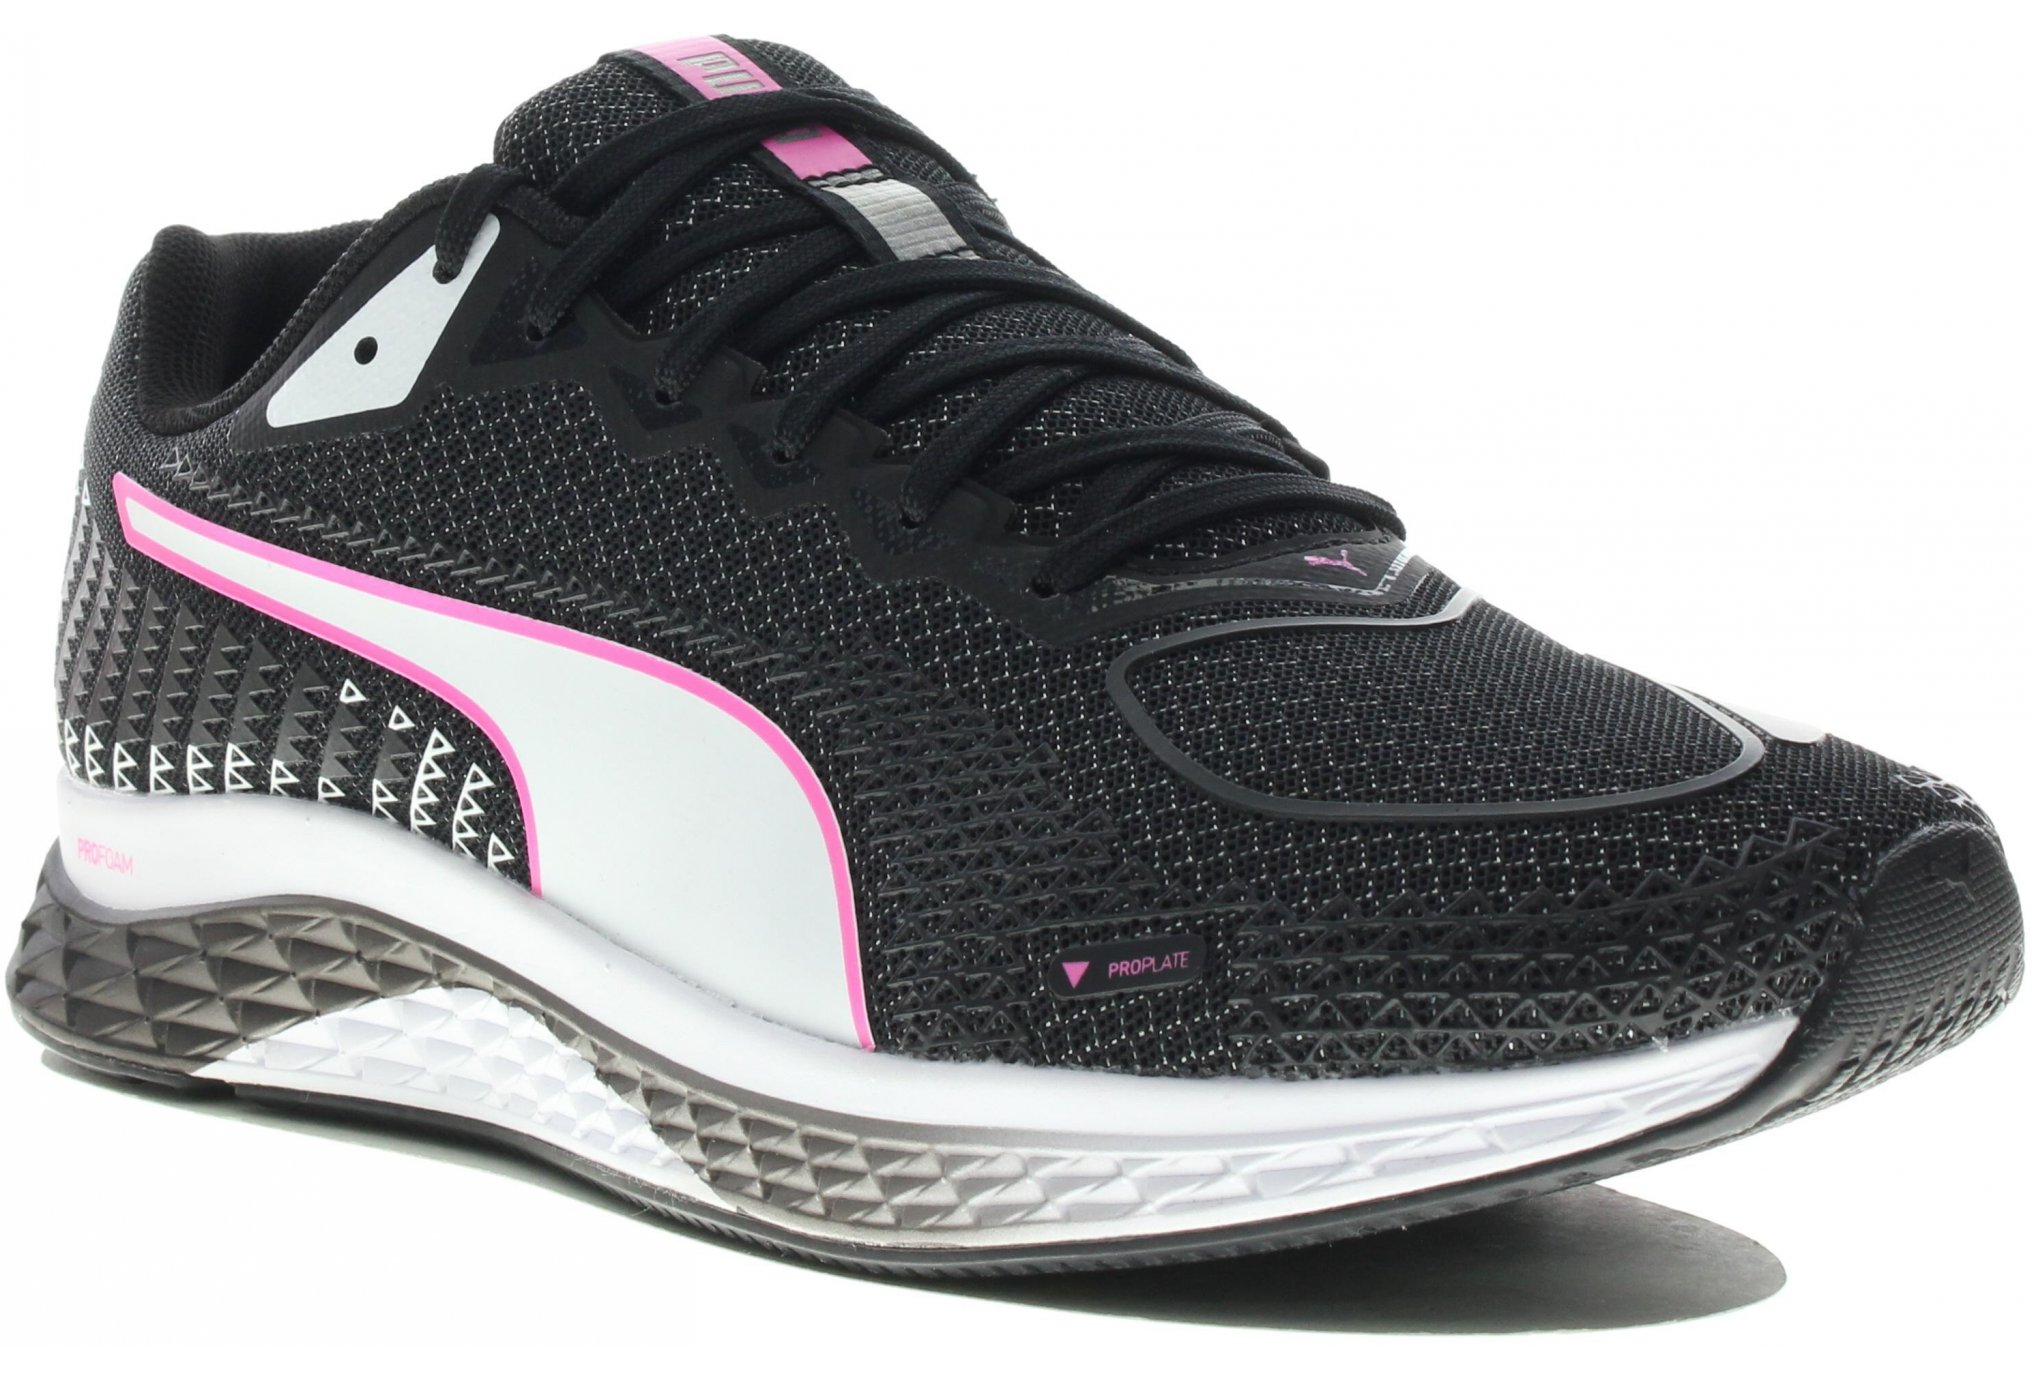 Puma Speed Sutamina 2 W Chaussures running femme